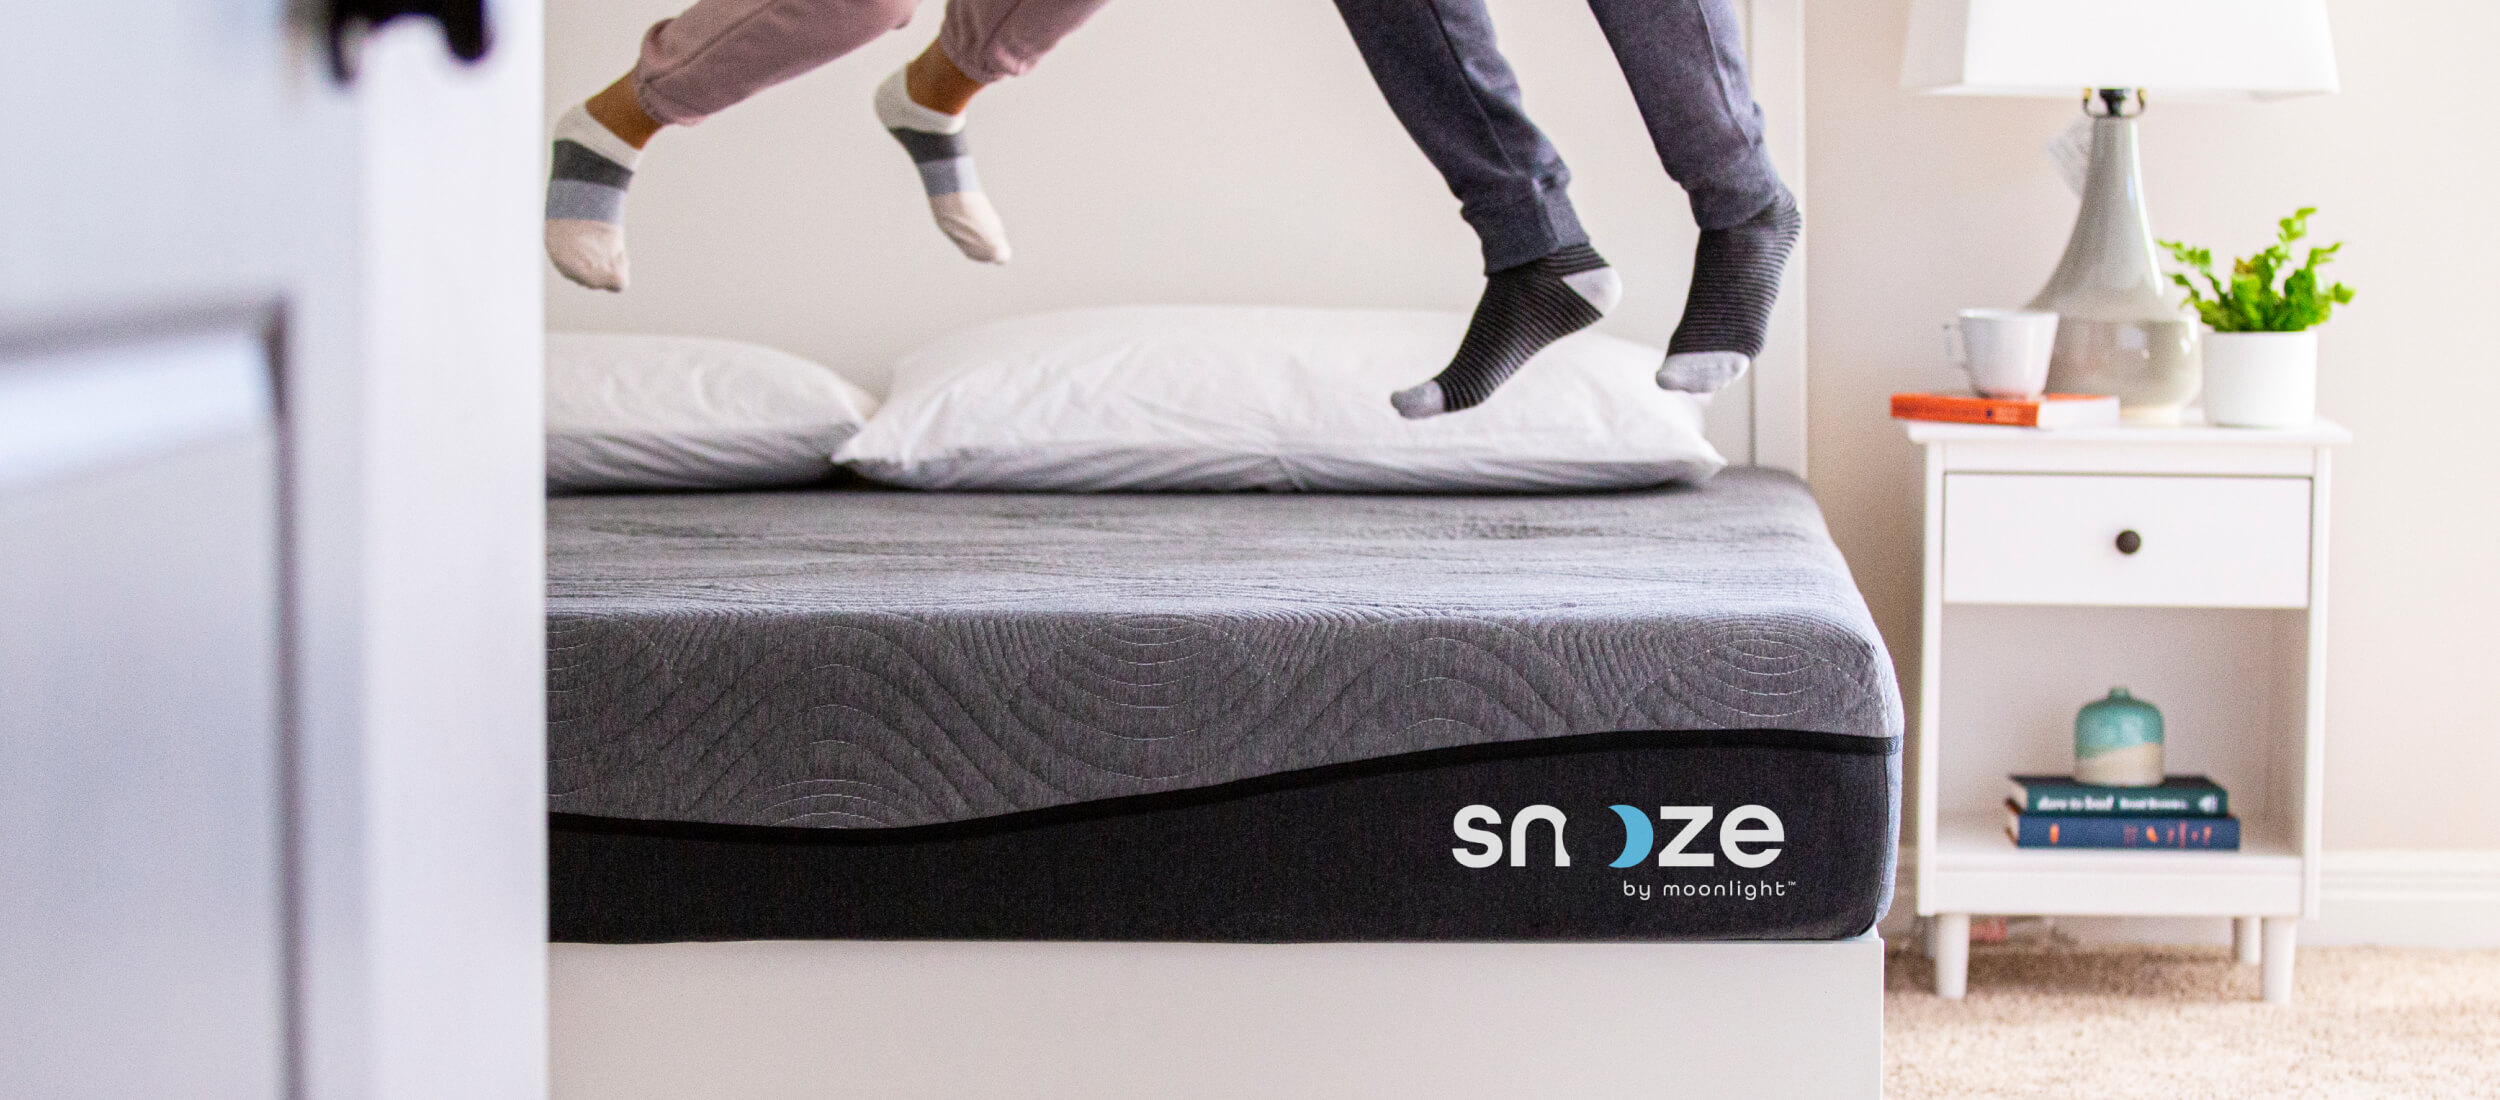 Snooze, Moonlight's new bed-in-a-box brand, designed by Fenix Strategic Design.